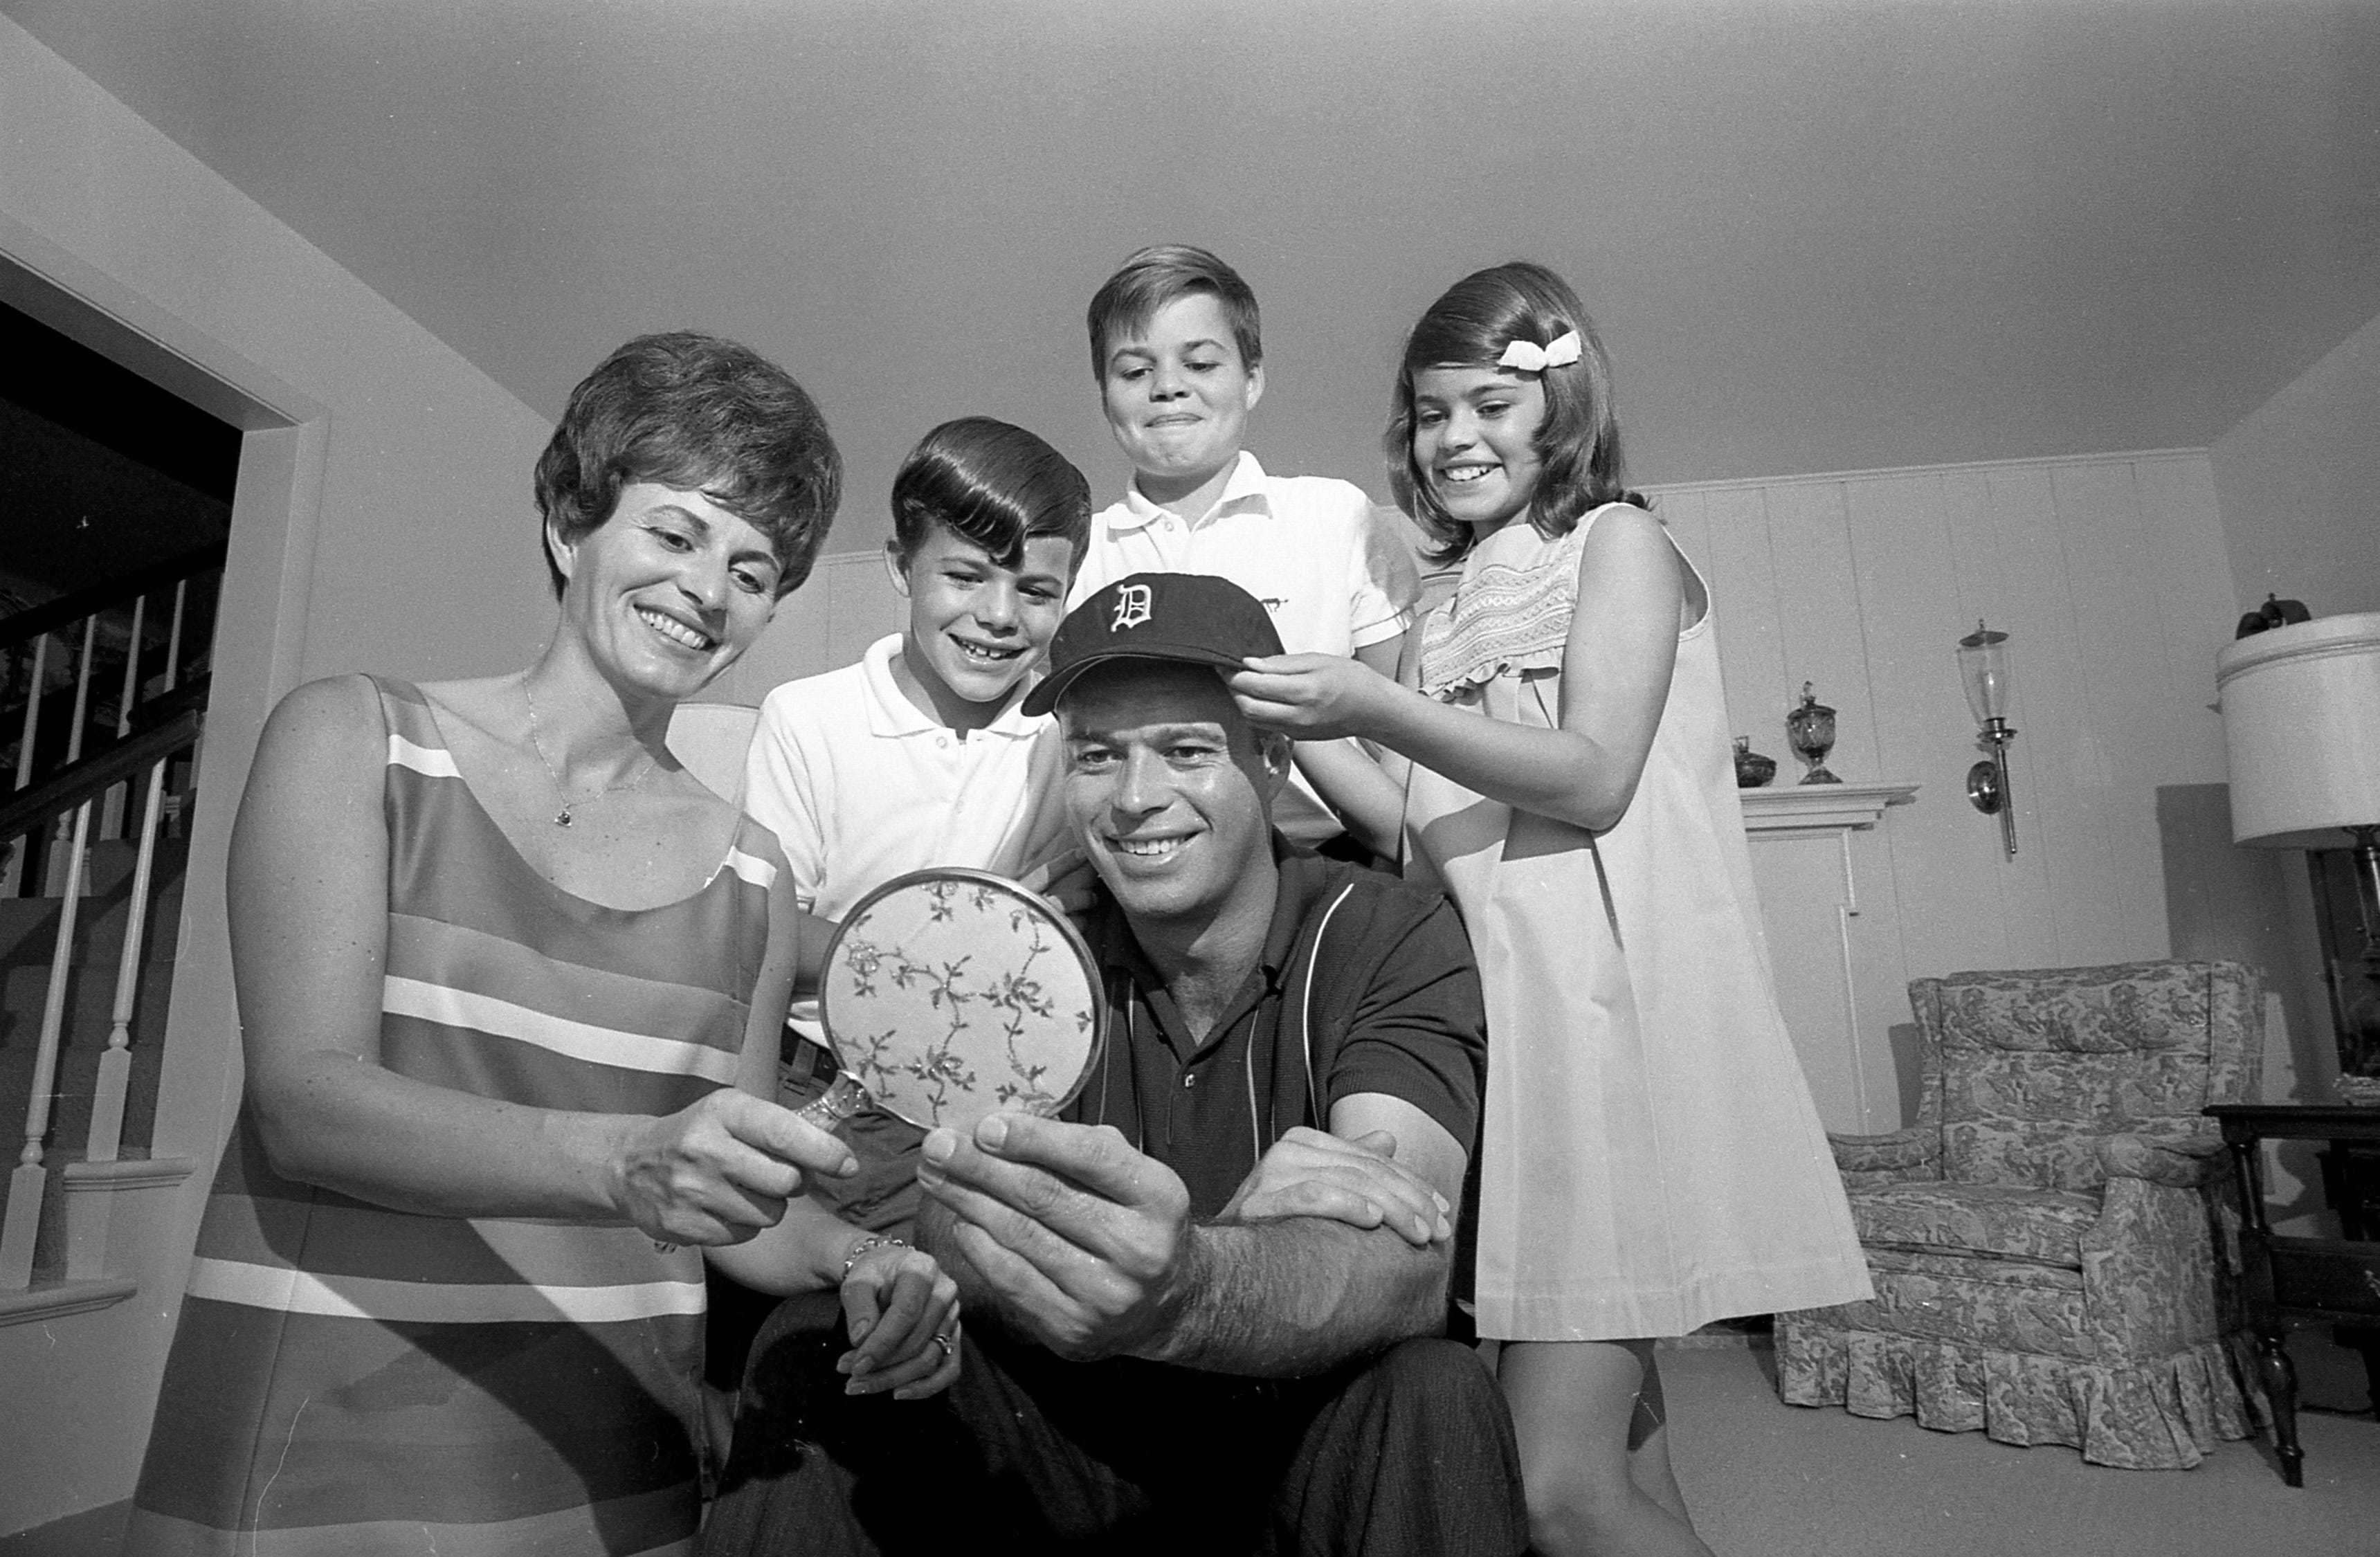 Eddie Mathews in 1968